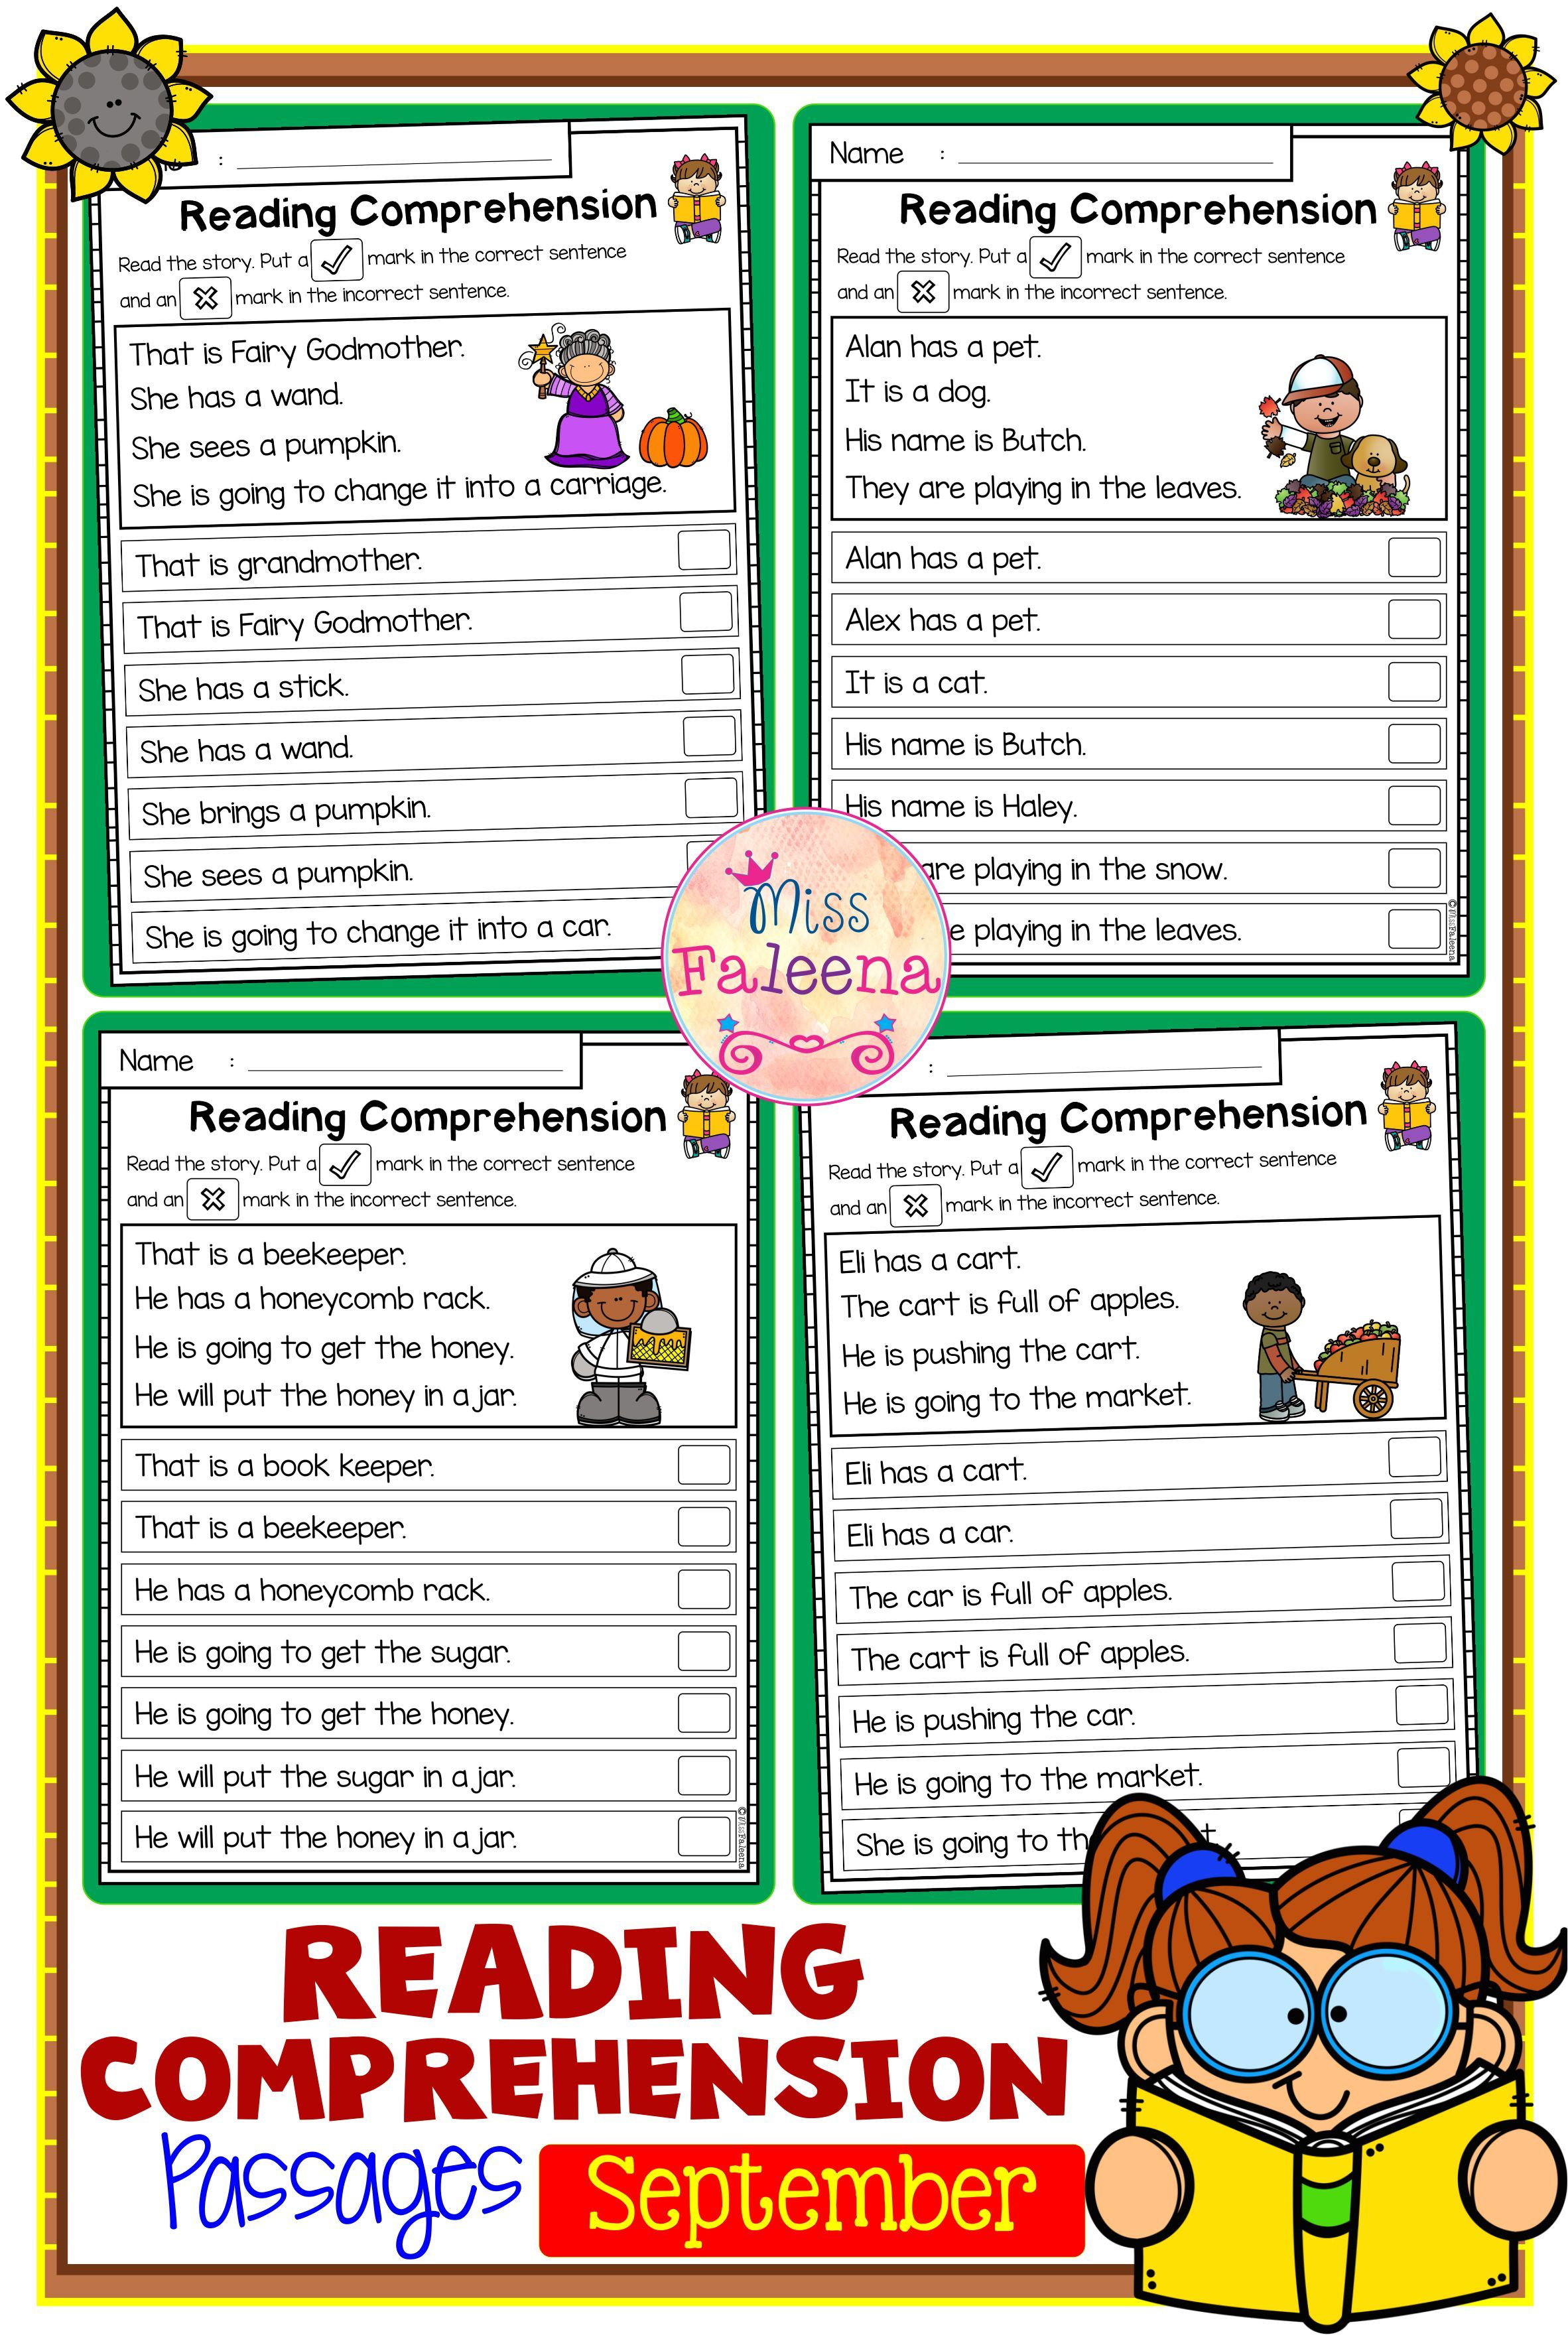 September Reading Comprehension Passages In